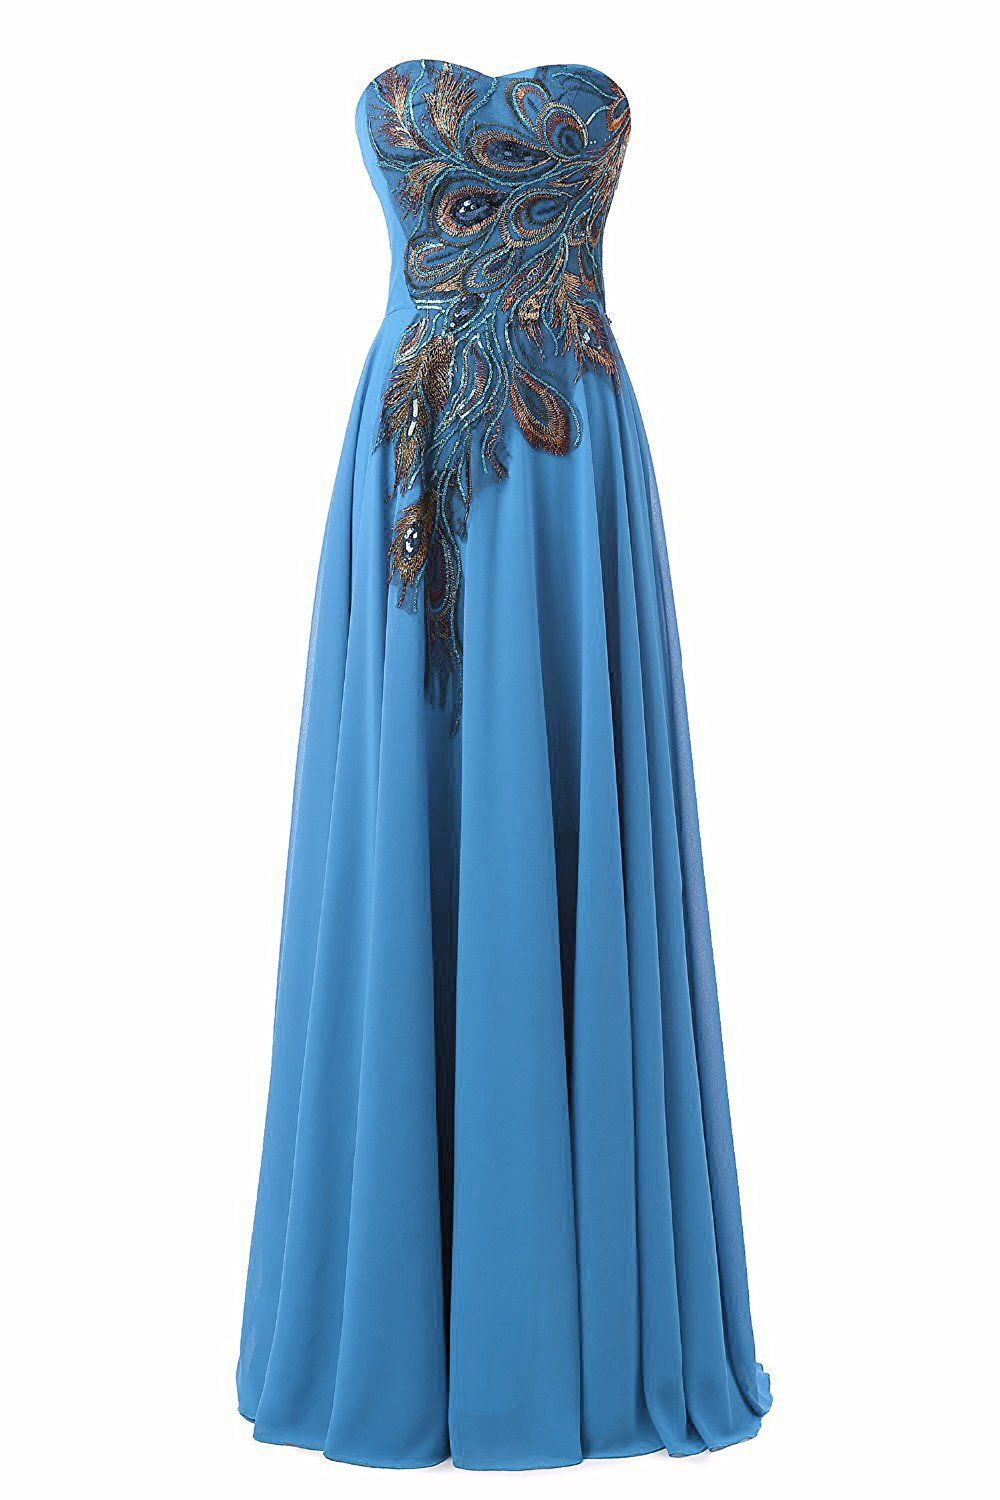 WAWALI Peacock Pattern Hand Embroidery Prom Dresses Evening Pary ...